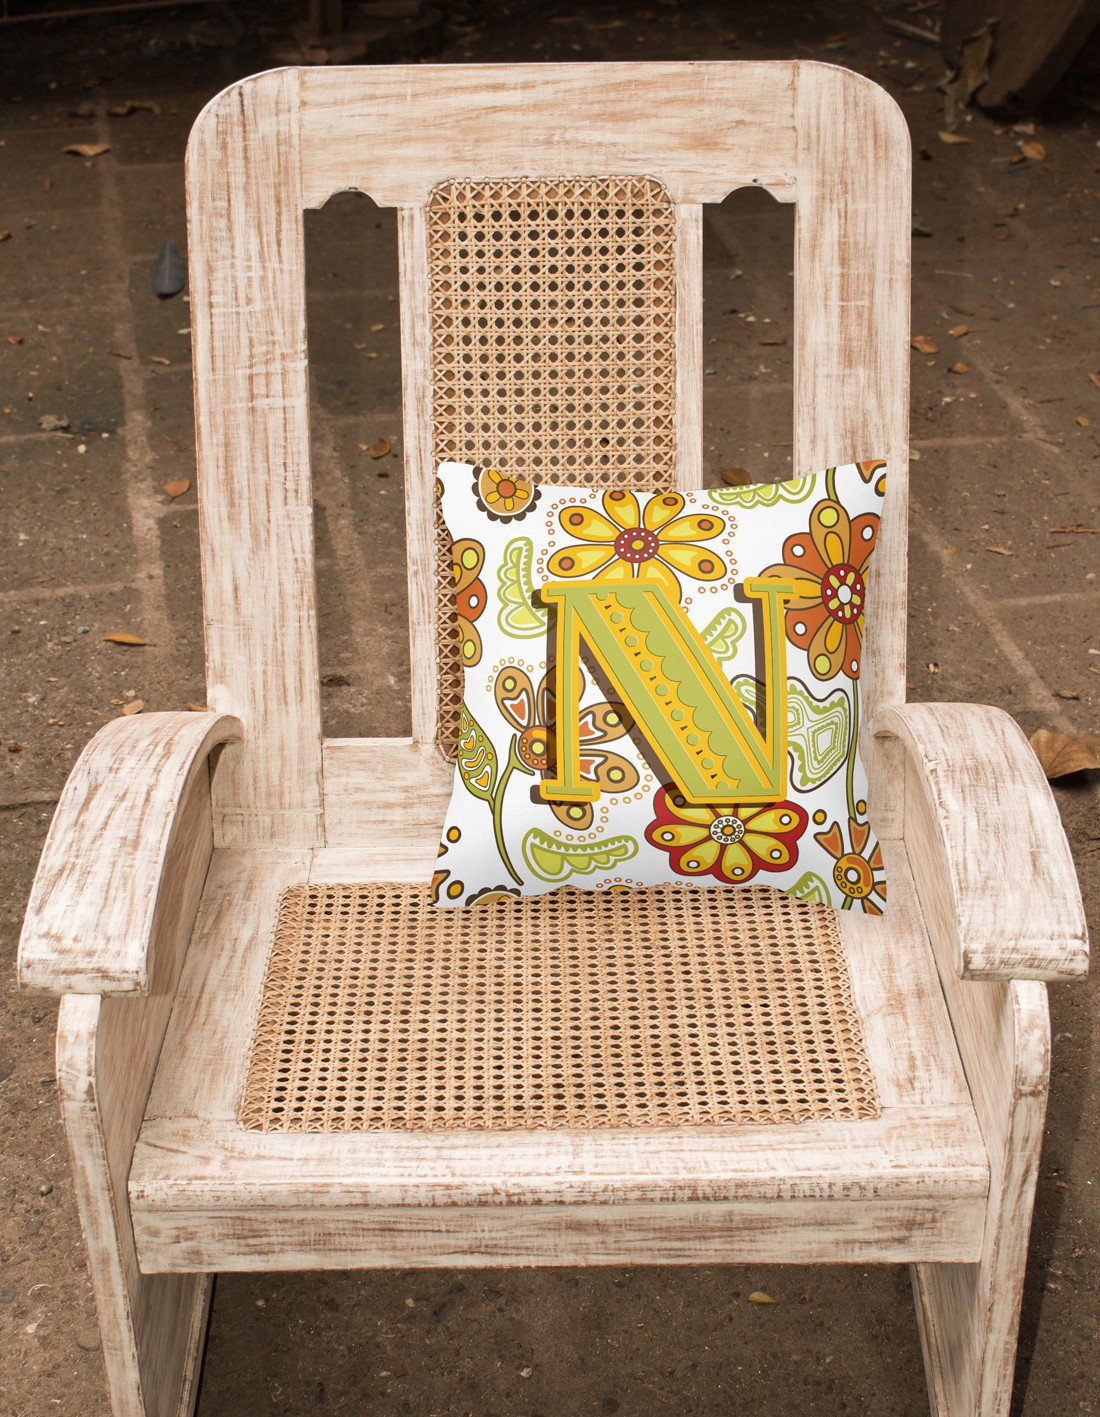 Letter N Floral Mustard and Green Canvas Fabric Decorative Pillow CJ2003-NPW1414 by Caroline's Treasures